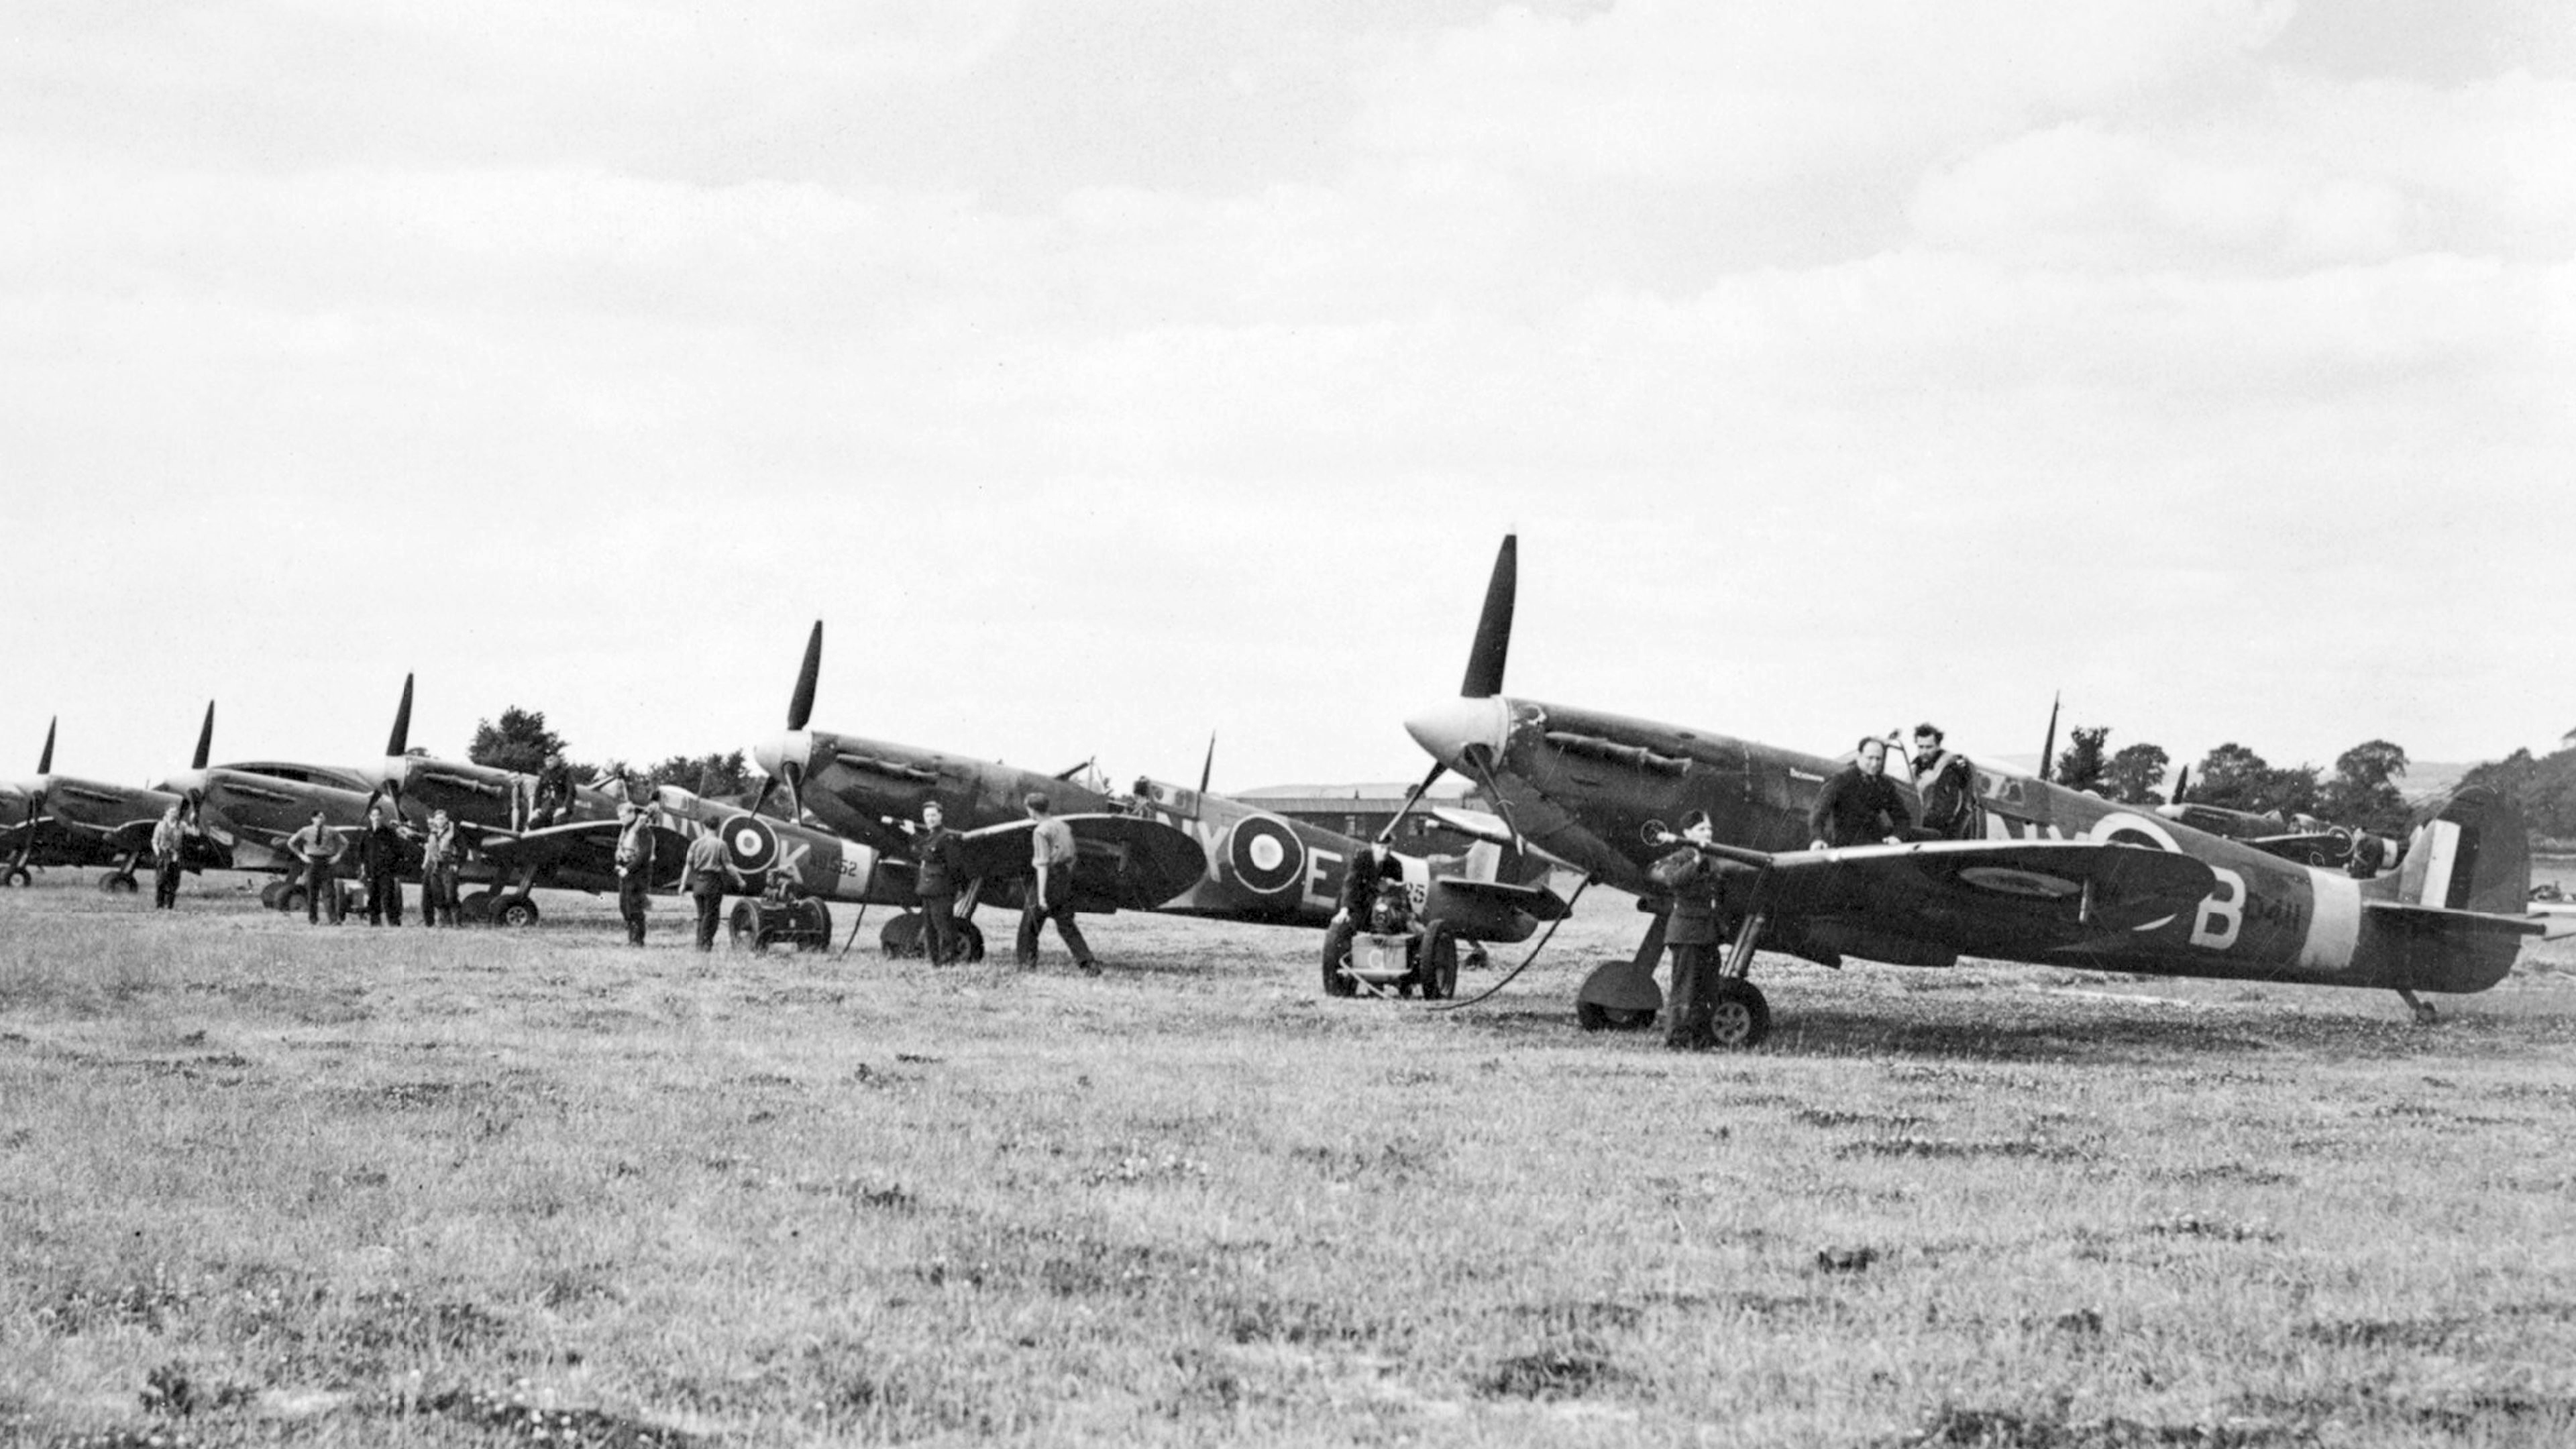 Spitfire MkVb RAF 131Sqn NXB AD411 NXE and NXK at Merston Sussex IWM CH5879a